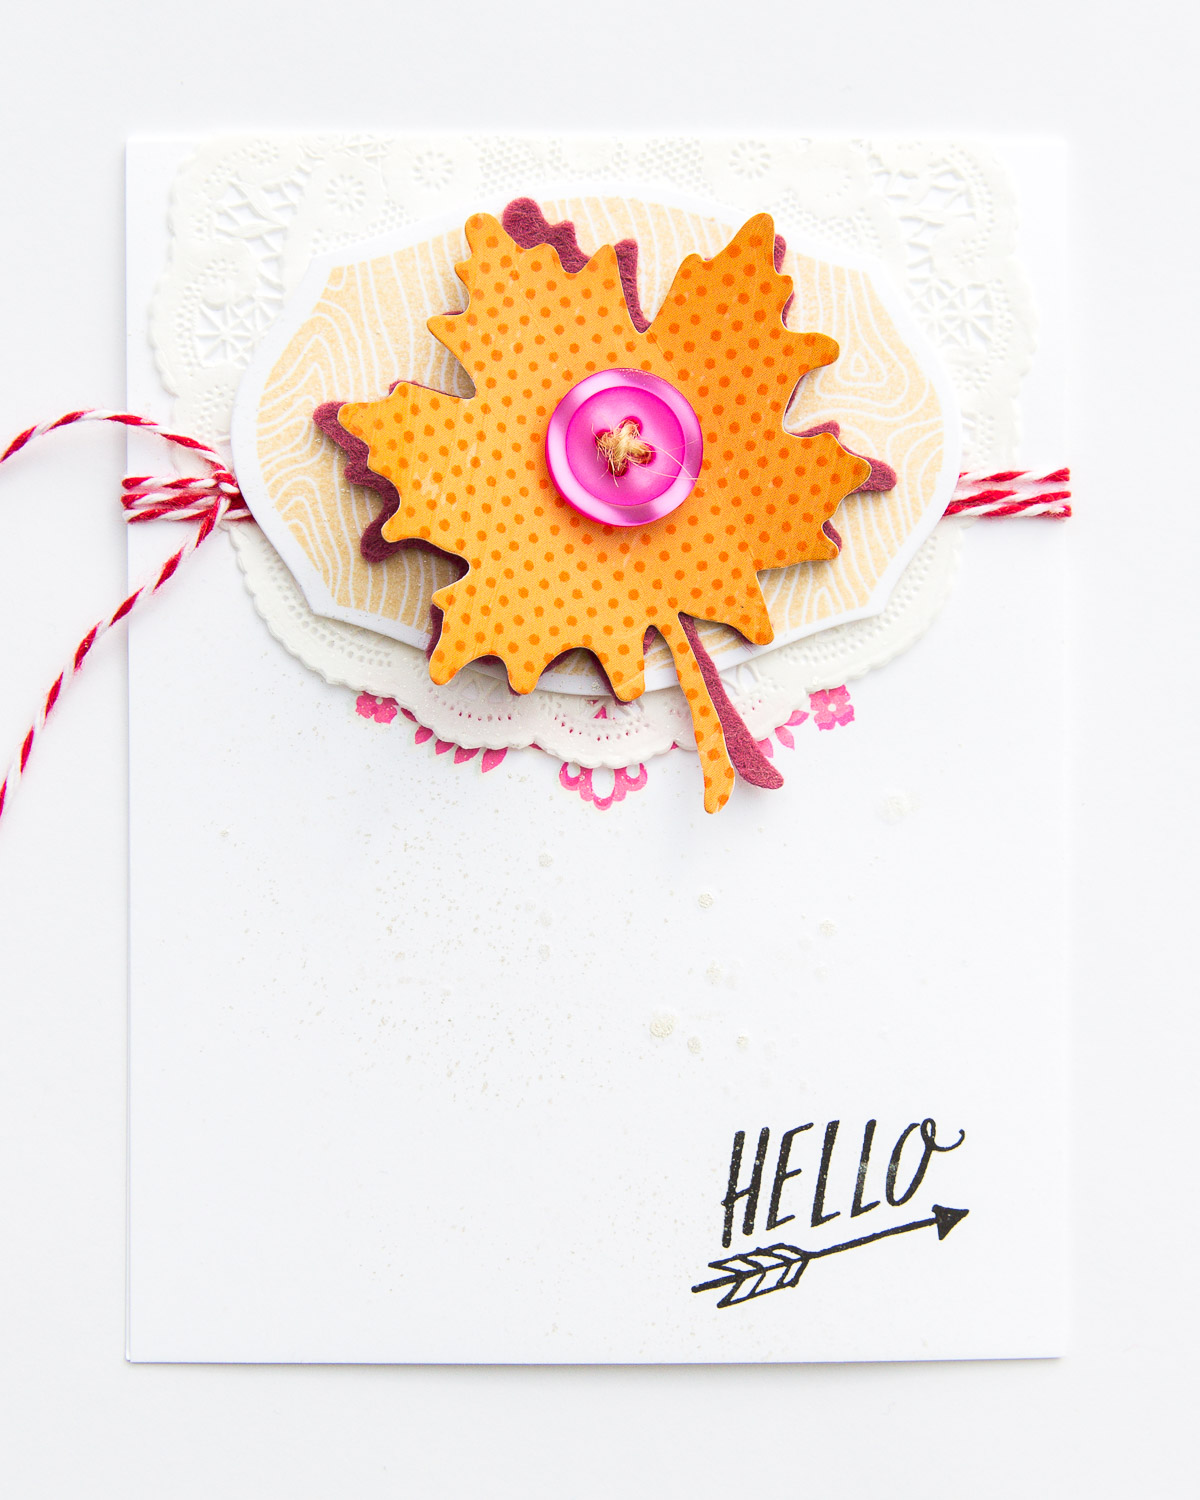 Fall Card by @pixnglue